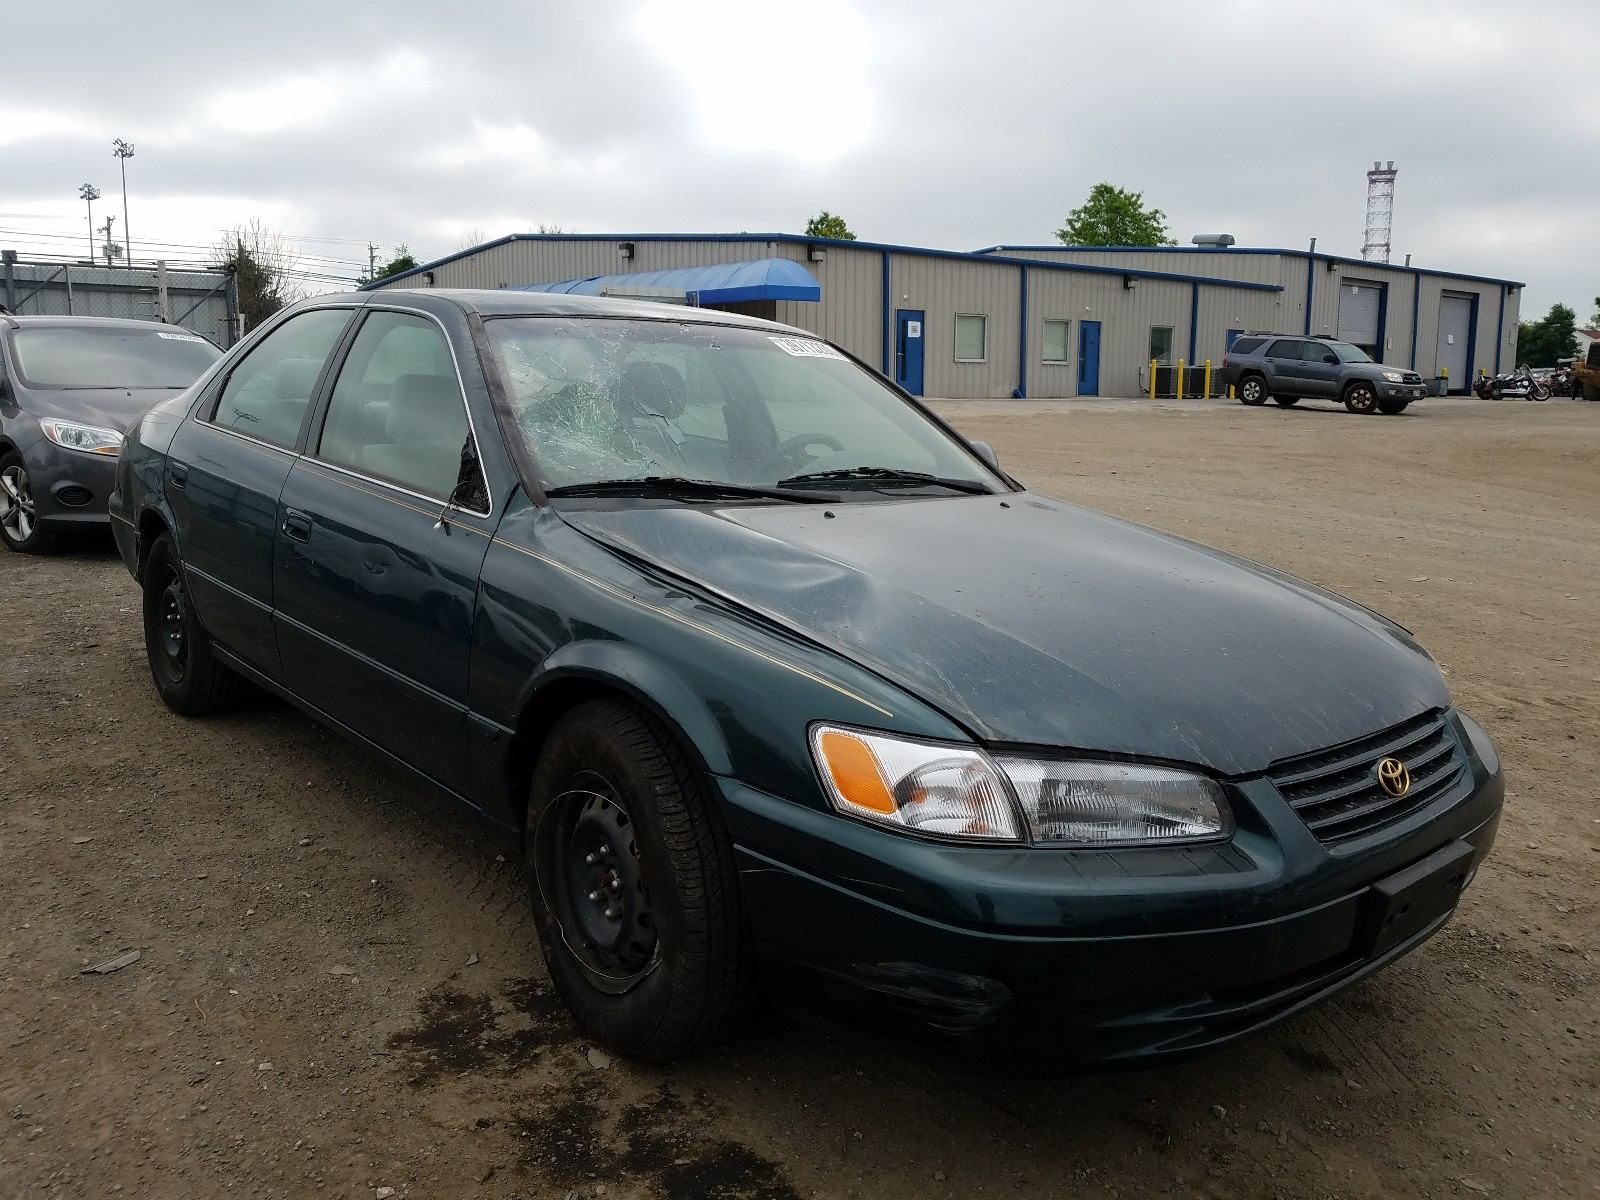 1997 toyota camry ce for sale at copart finksburg md lot 39713200 salvagereseller com 1997 toyota camry ce for sale at copart